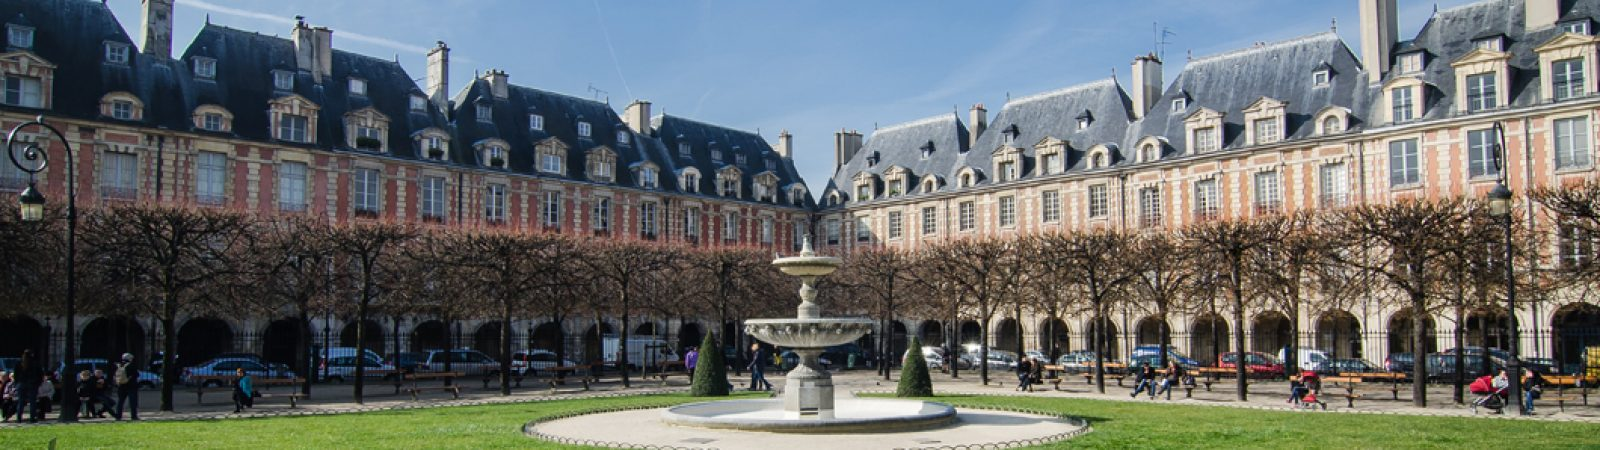 Private Stadtführung, private guided tours, visites privées guidées, claudia guide Paris